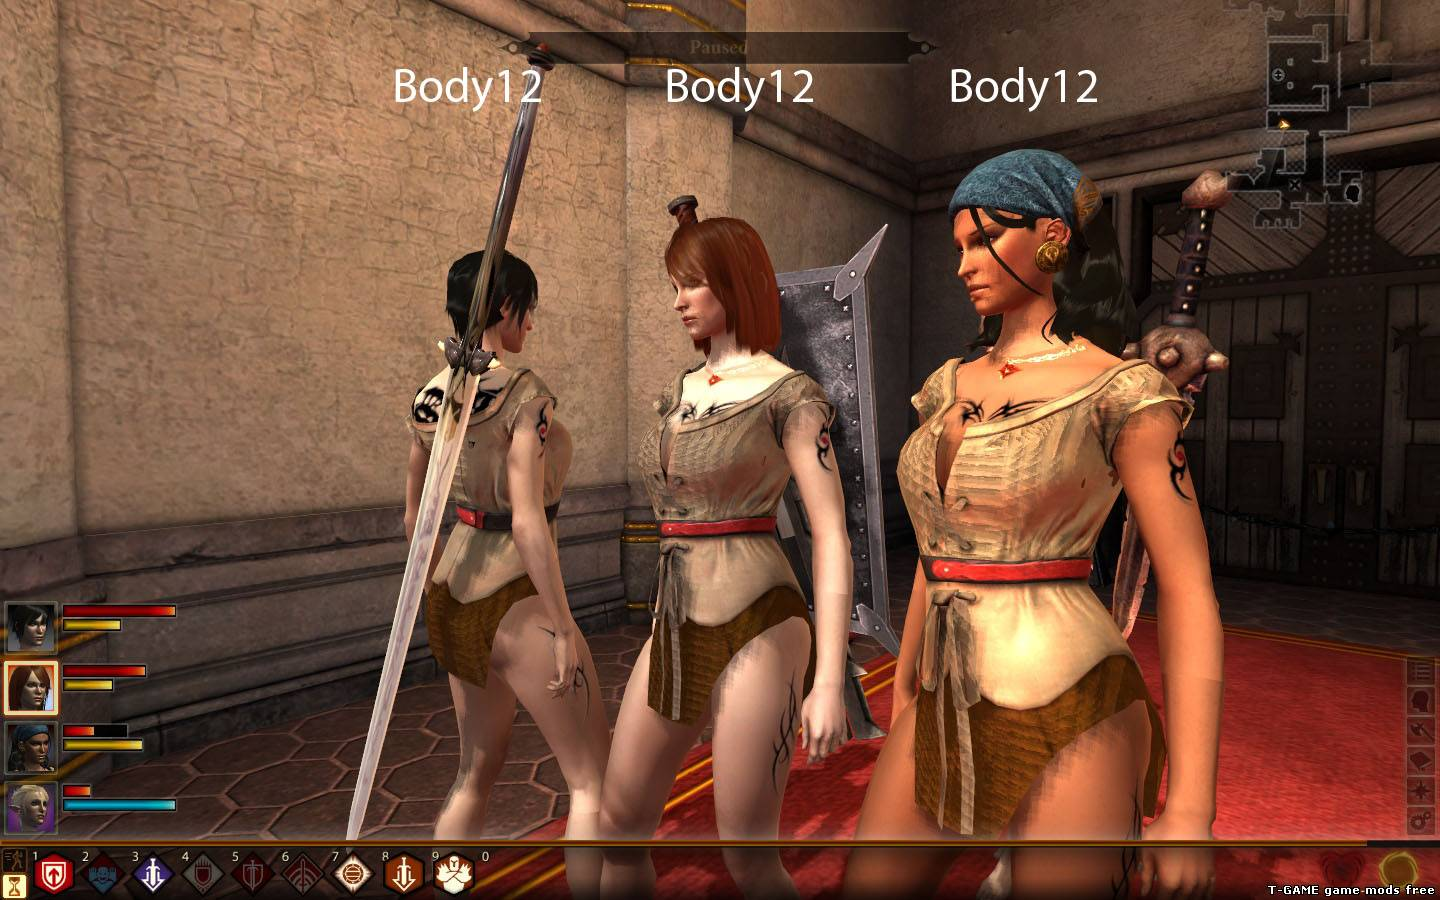 Dragon age origins nud mod adult video